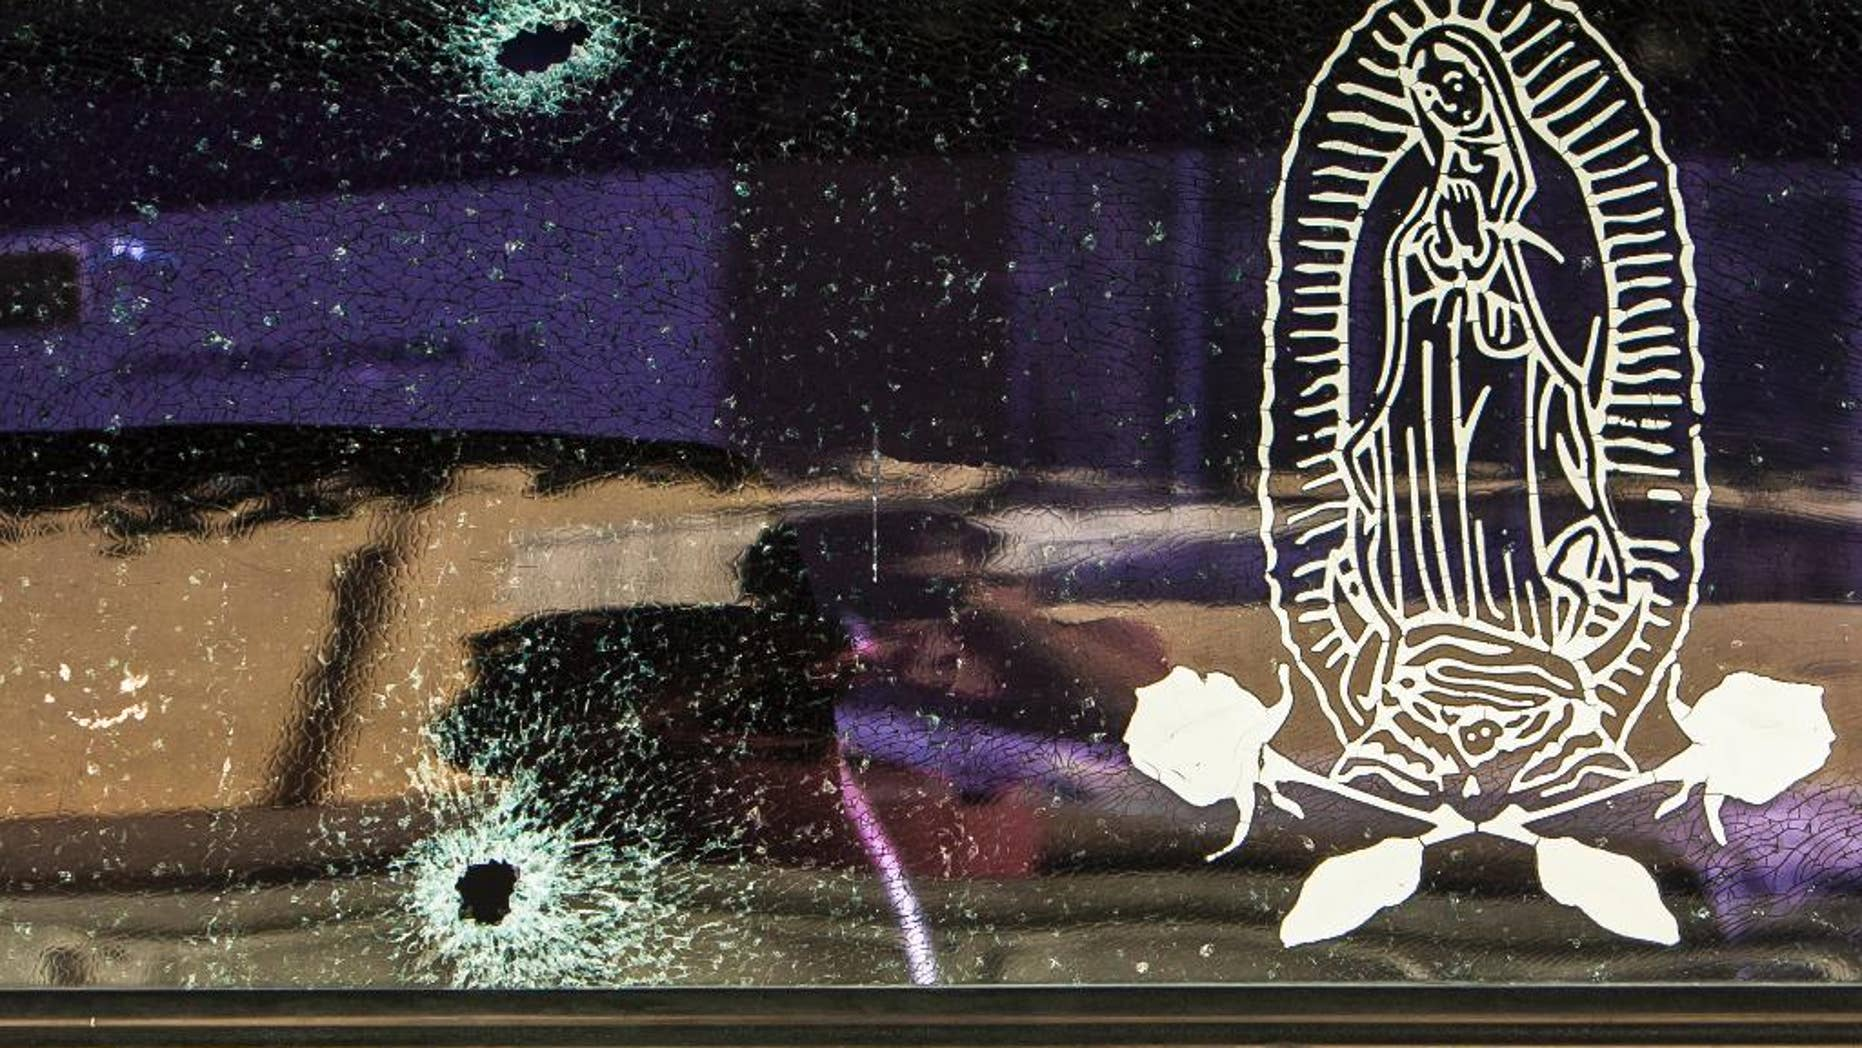 The rear windshield of a vehicle is held together by a transparent film with an image of the Virgin of Guadalupe, after being struck by bullets in Culiacan, Mexico, Tuesday, Feb. 7, 2017.(AP Photo/Rashide Frias)